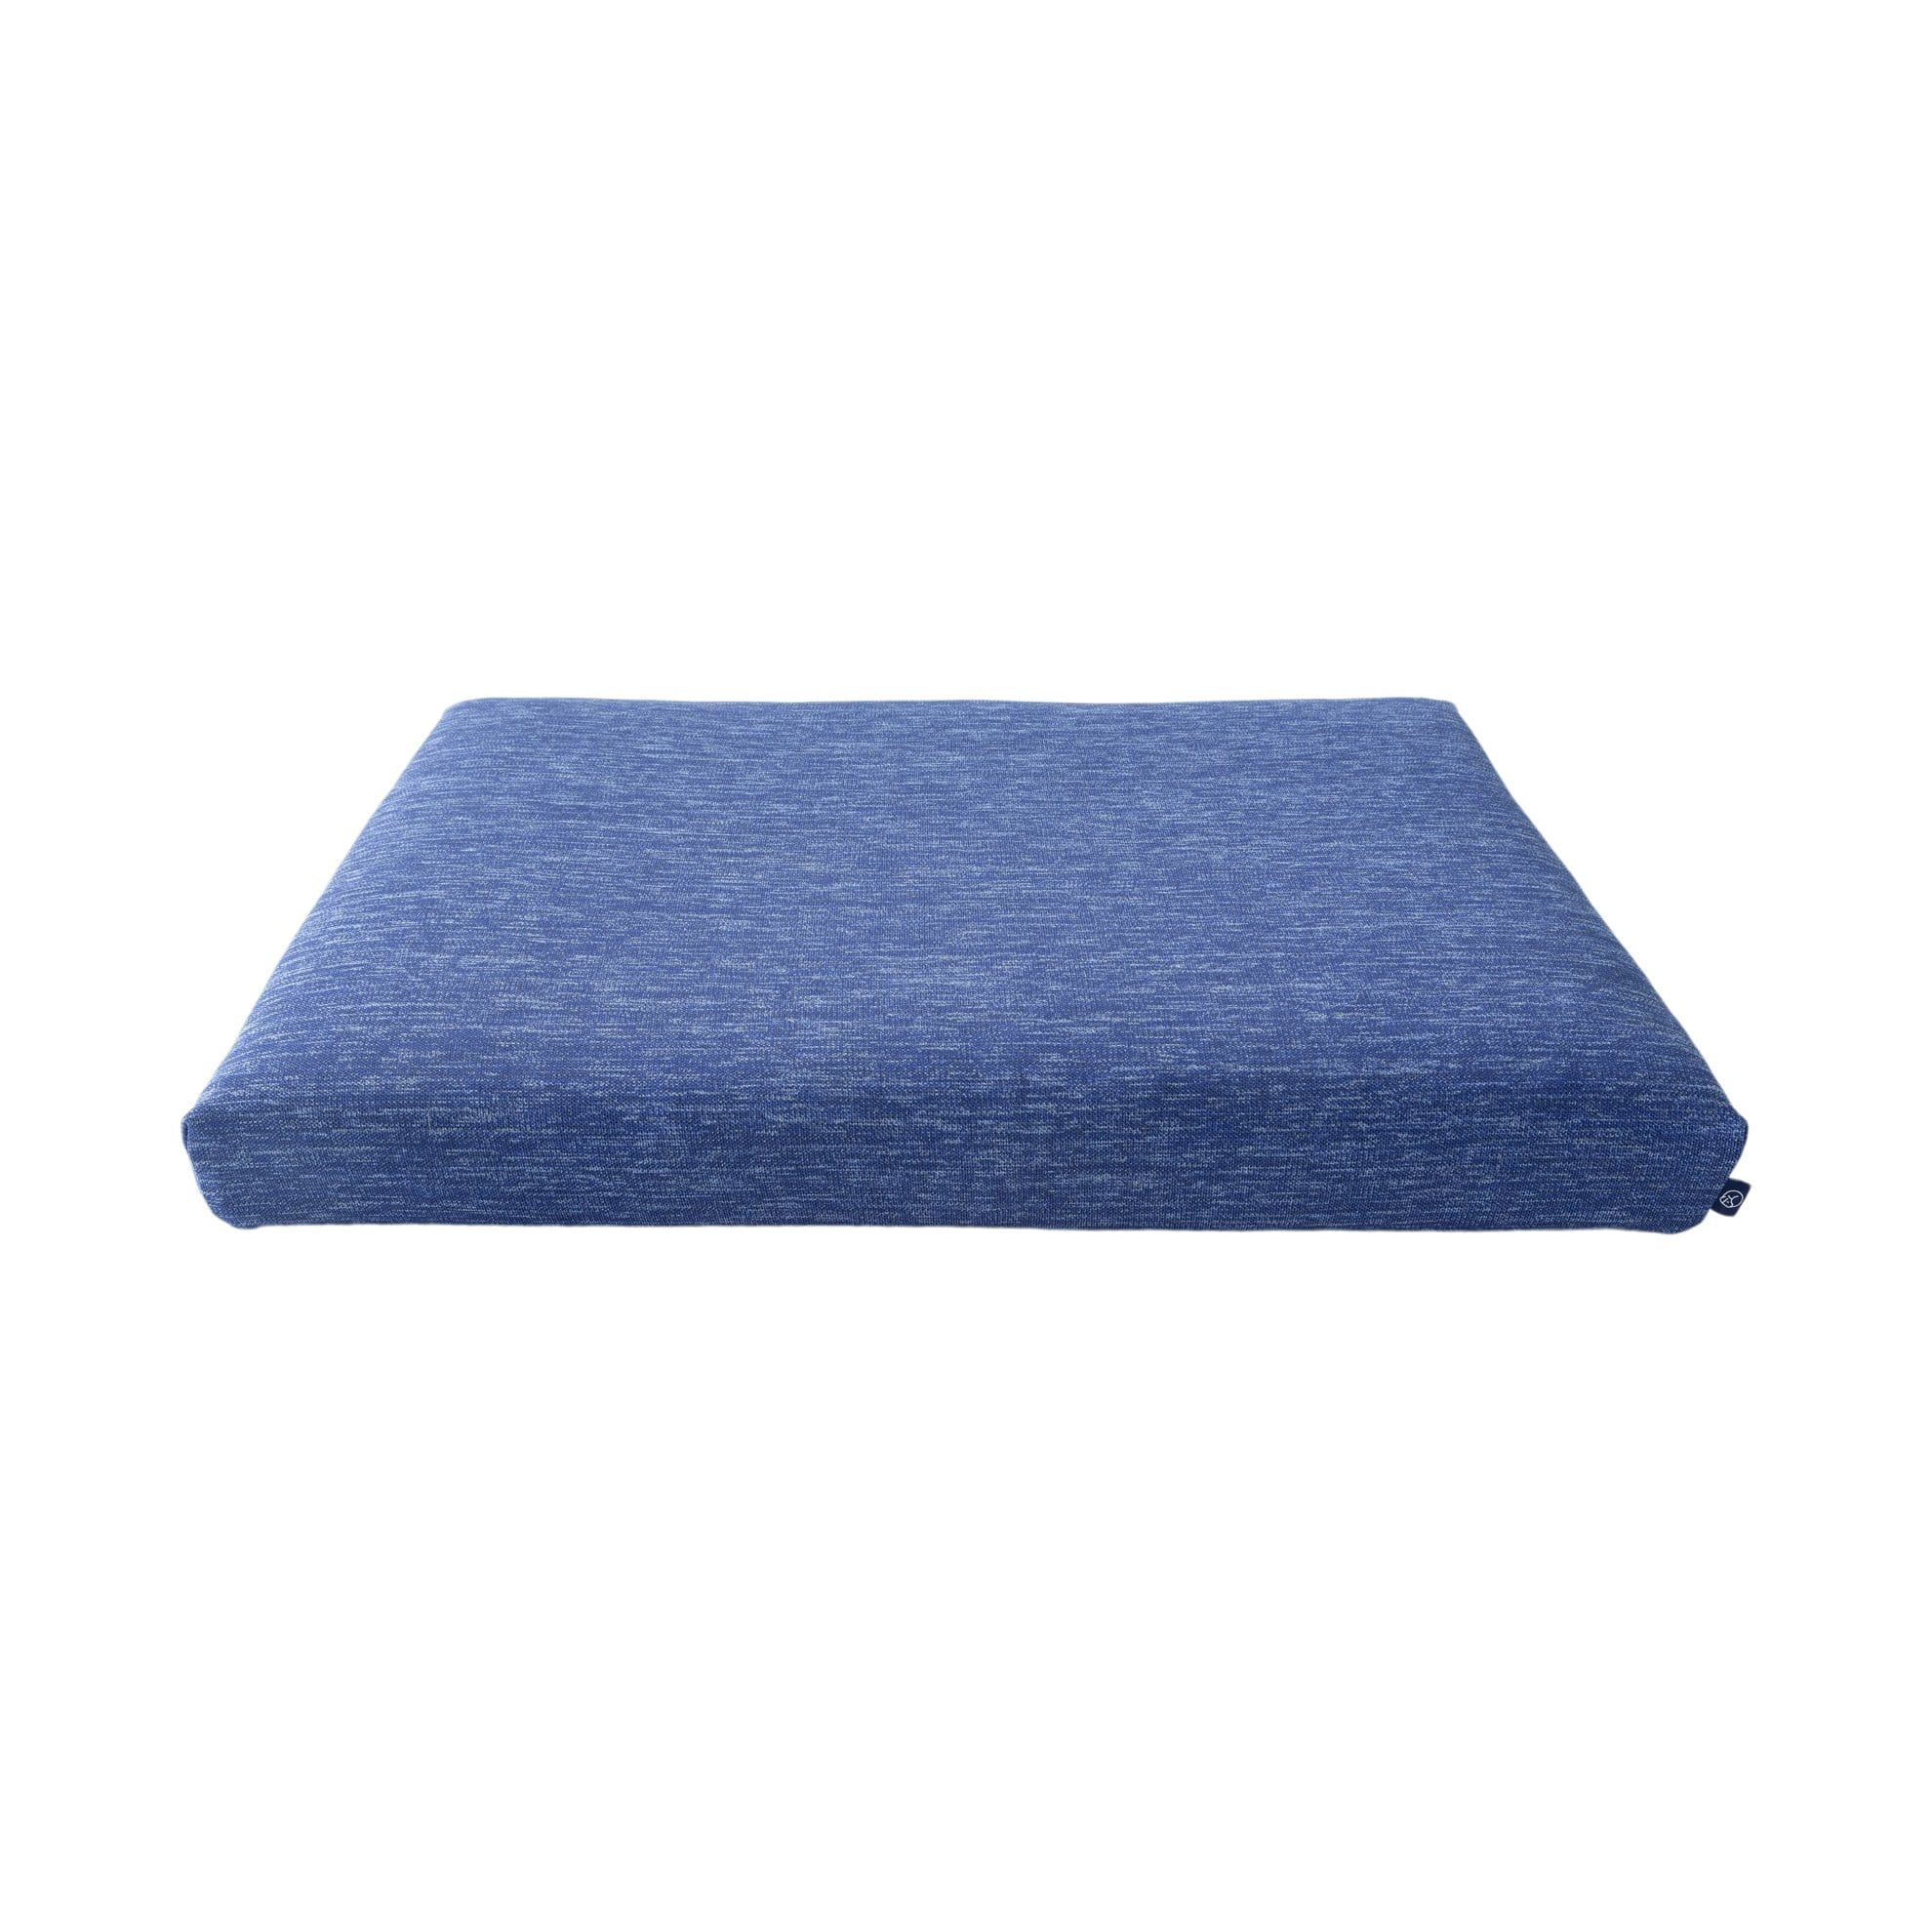 Laylo Pets Beds + Mats Blue Melange Dog Bed or Bed Cover